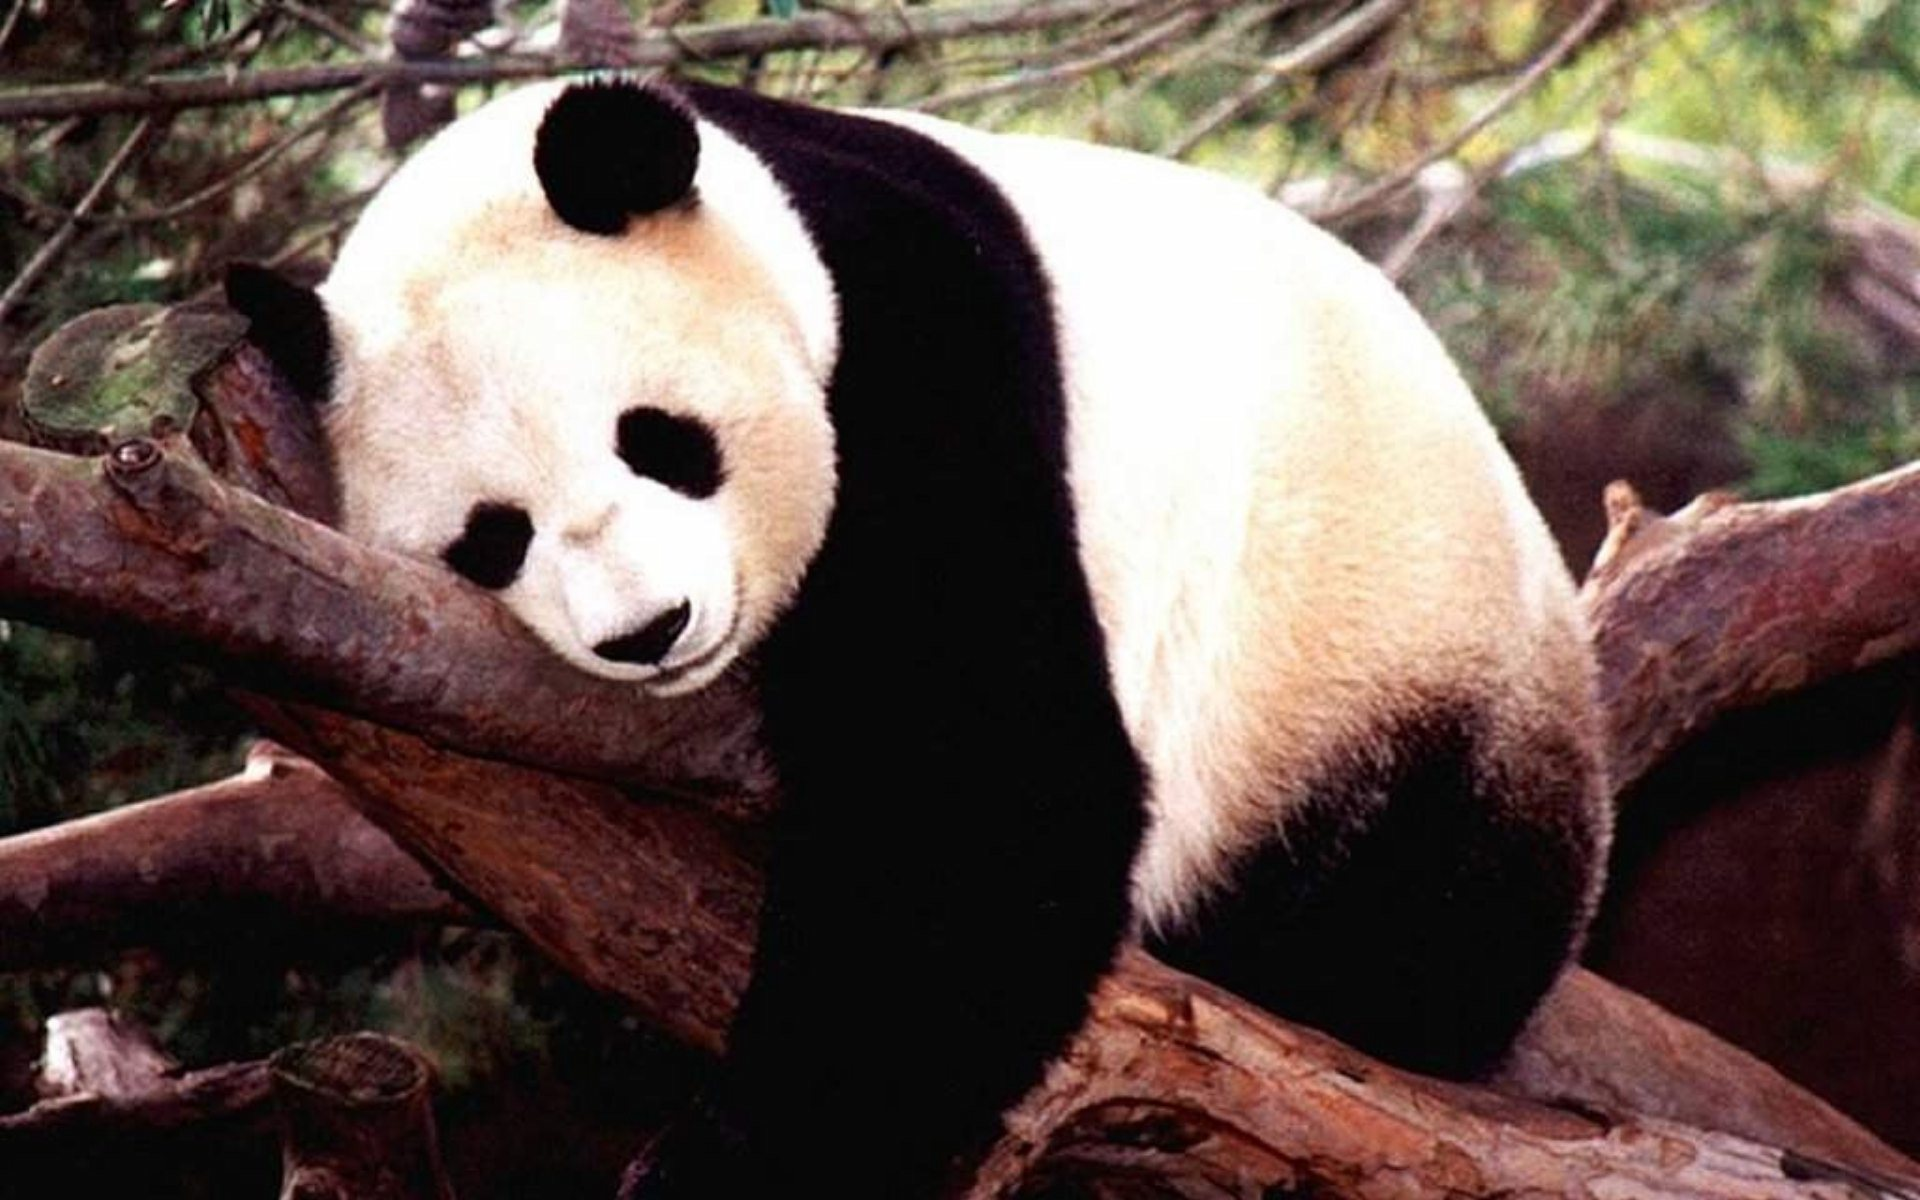 cute-panda_wallpapers_9366_1920x1200.jpg#panda%20cute%201920x1200